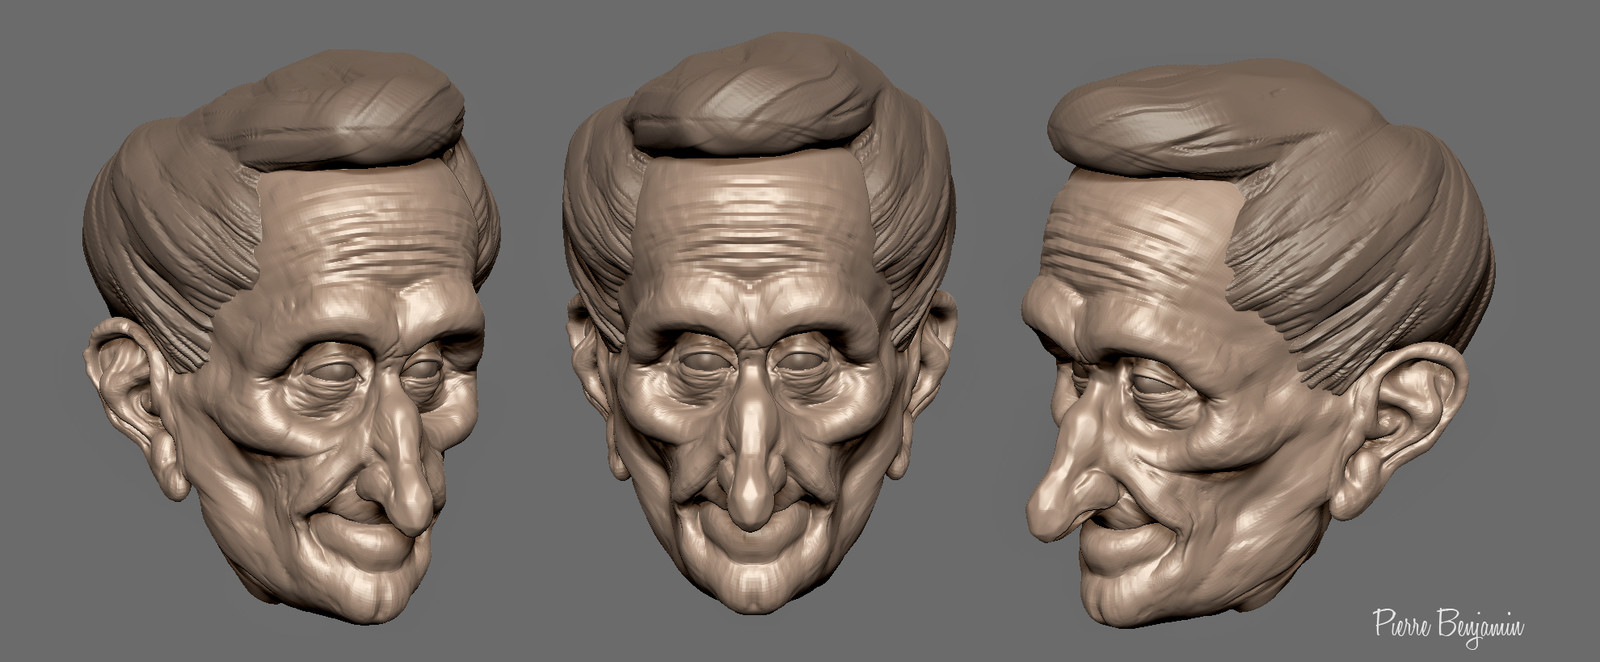 1h30 speed sculpt